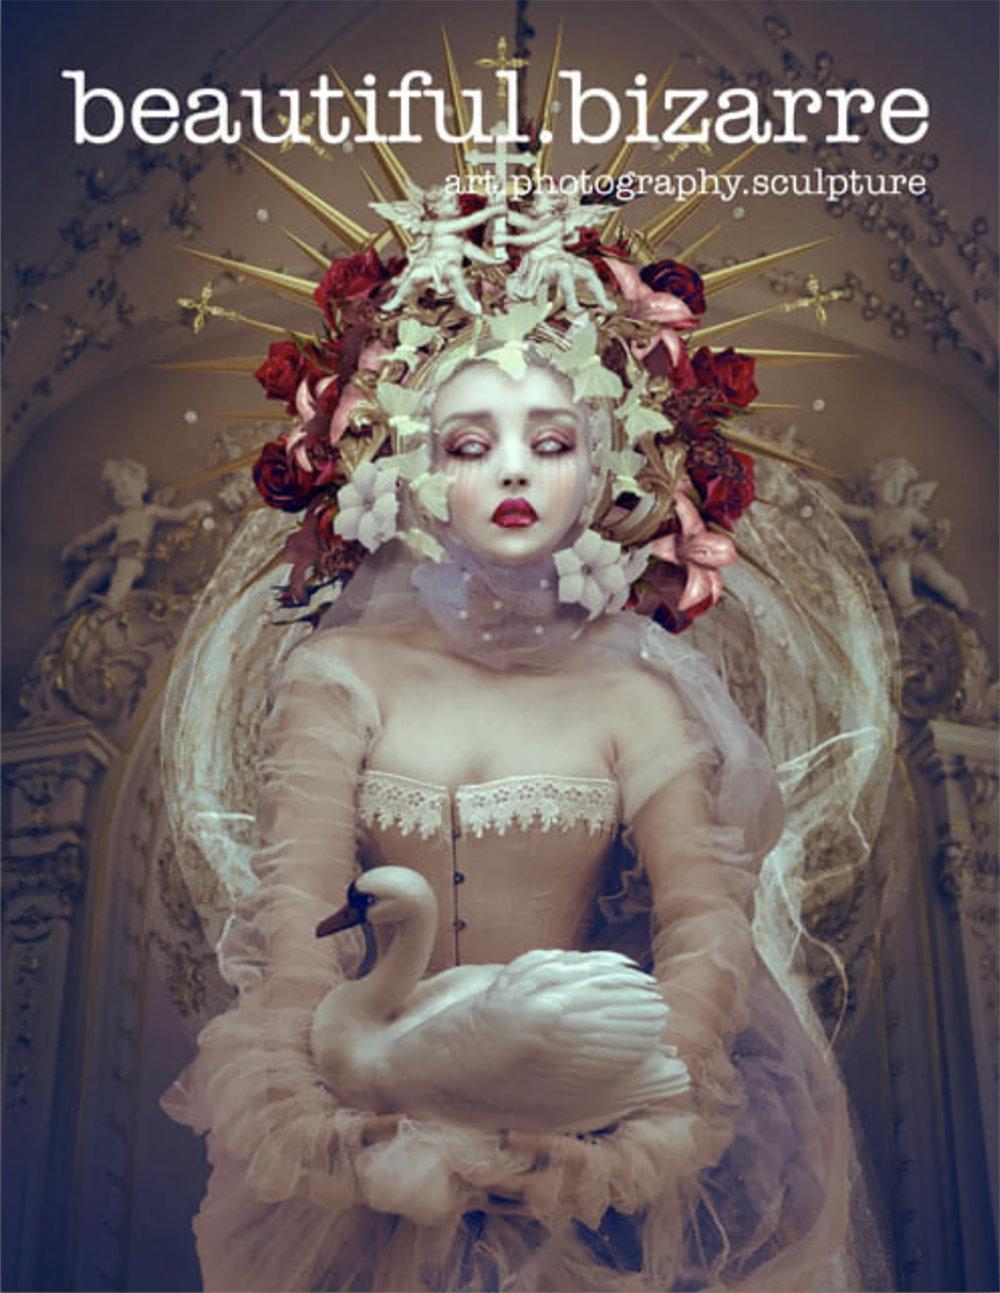 Beautiful Bizarre Mag Vol. 1.jpg